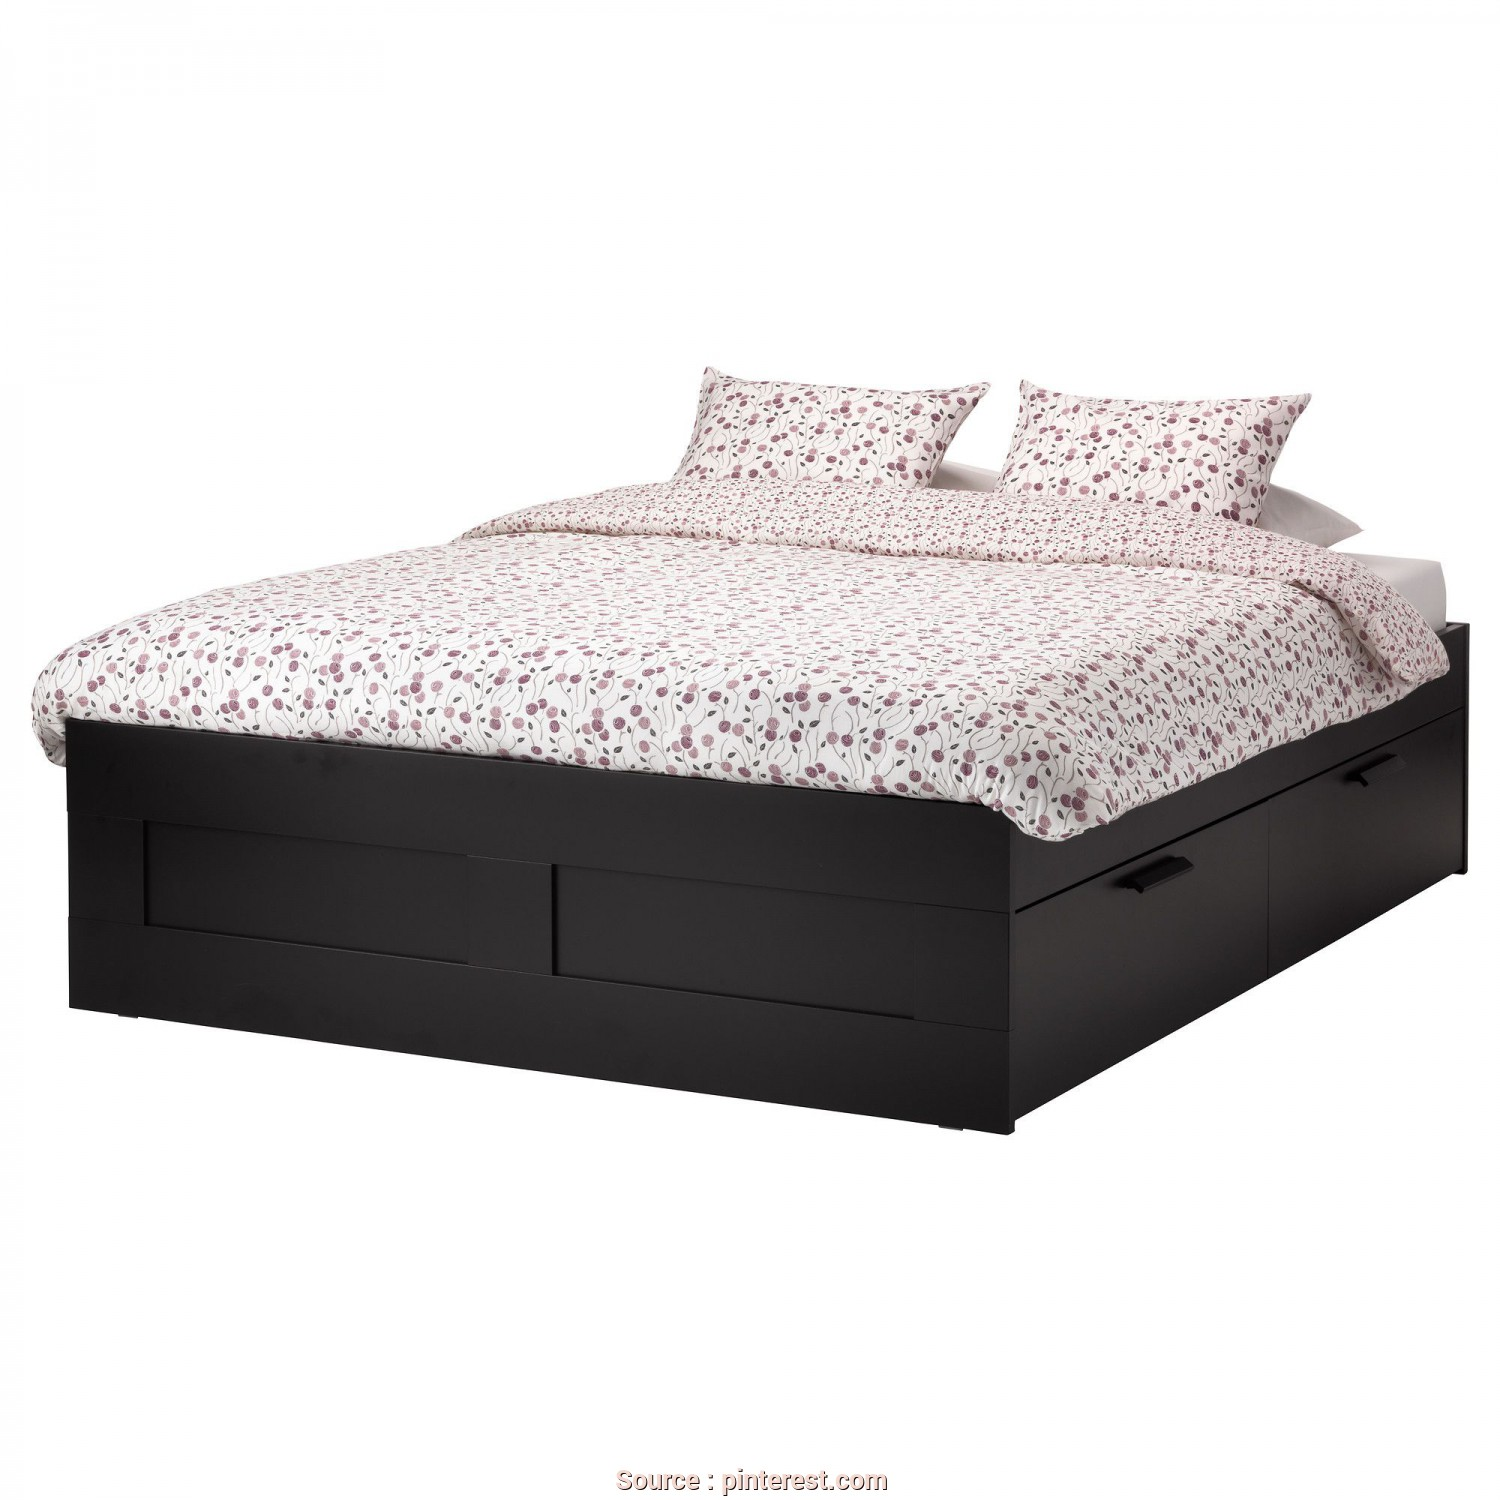 Brimnes Letto Video, Esclusivo IKEA, BRIMNES,, Frame With Storage, Queen, Lönset, ,, 4 Large Drawers Give, An Extra Storage Space Under, Bed.Adjustable, Sides Allow, To